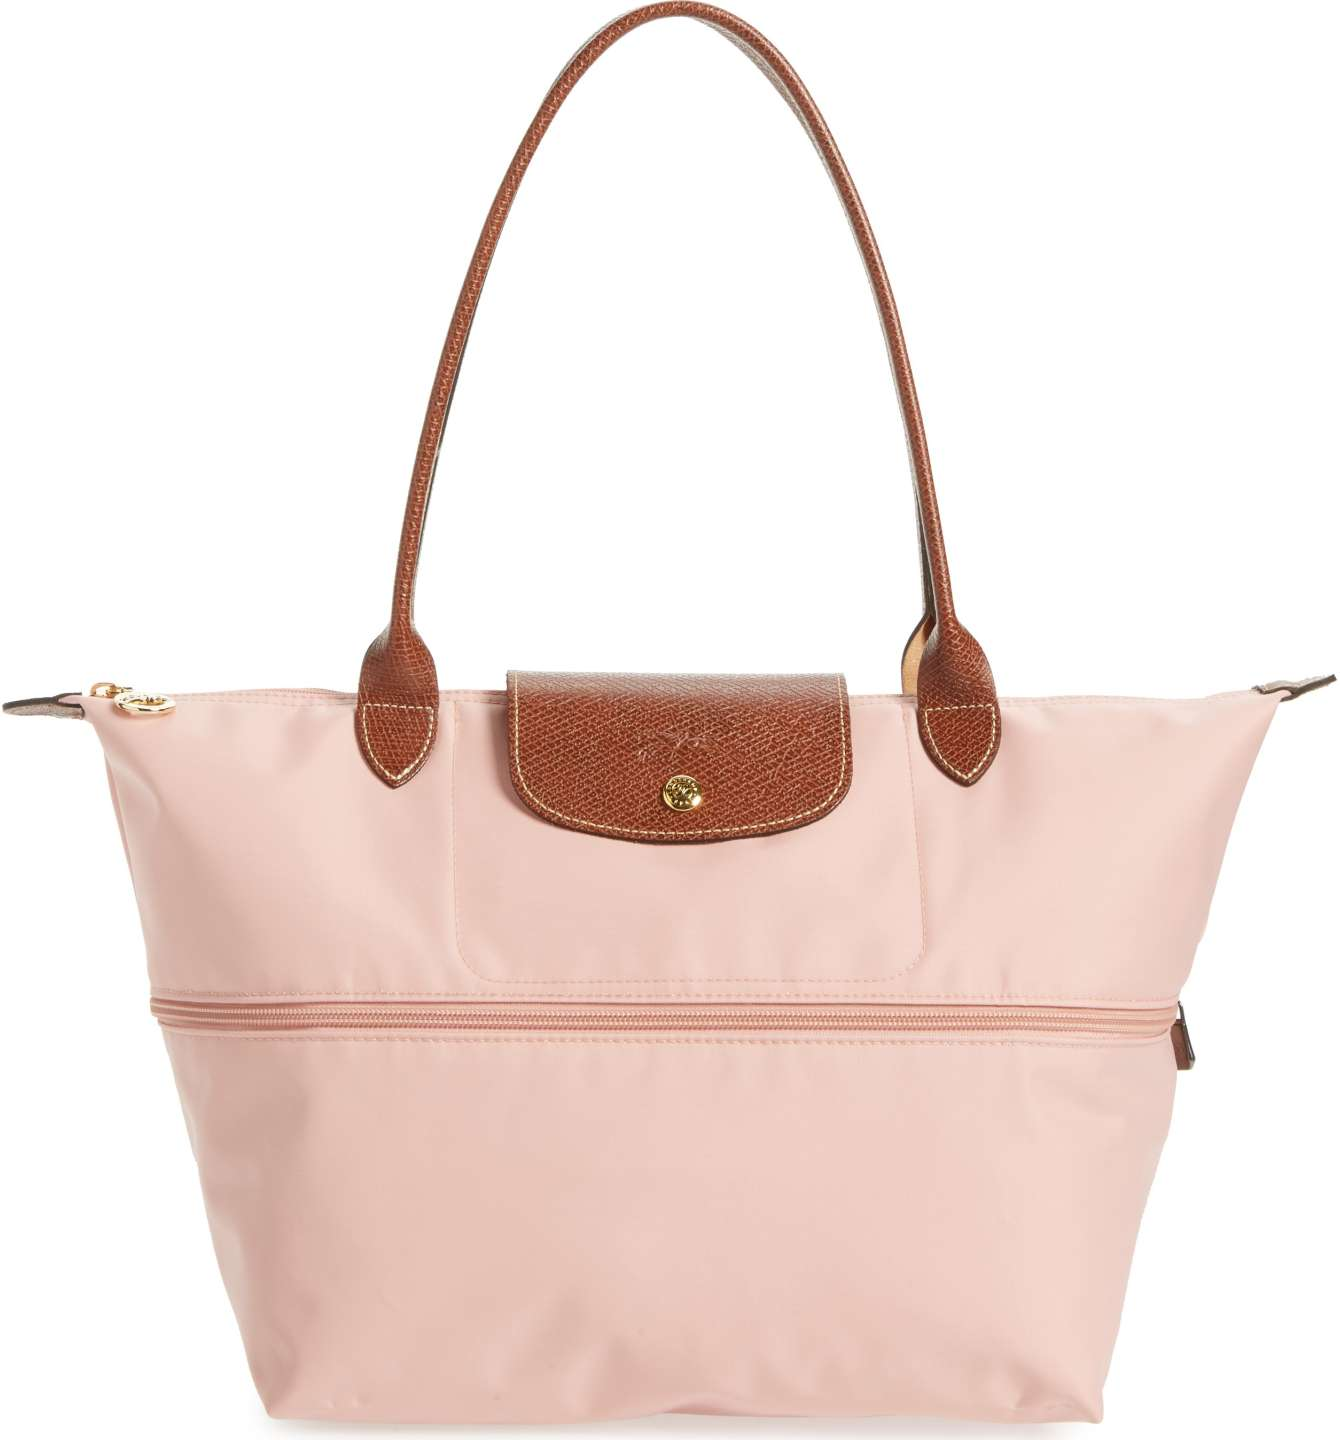 "longchamp ""le pliage"" expandable tote in baby pink"